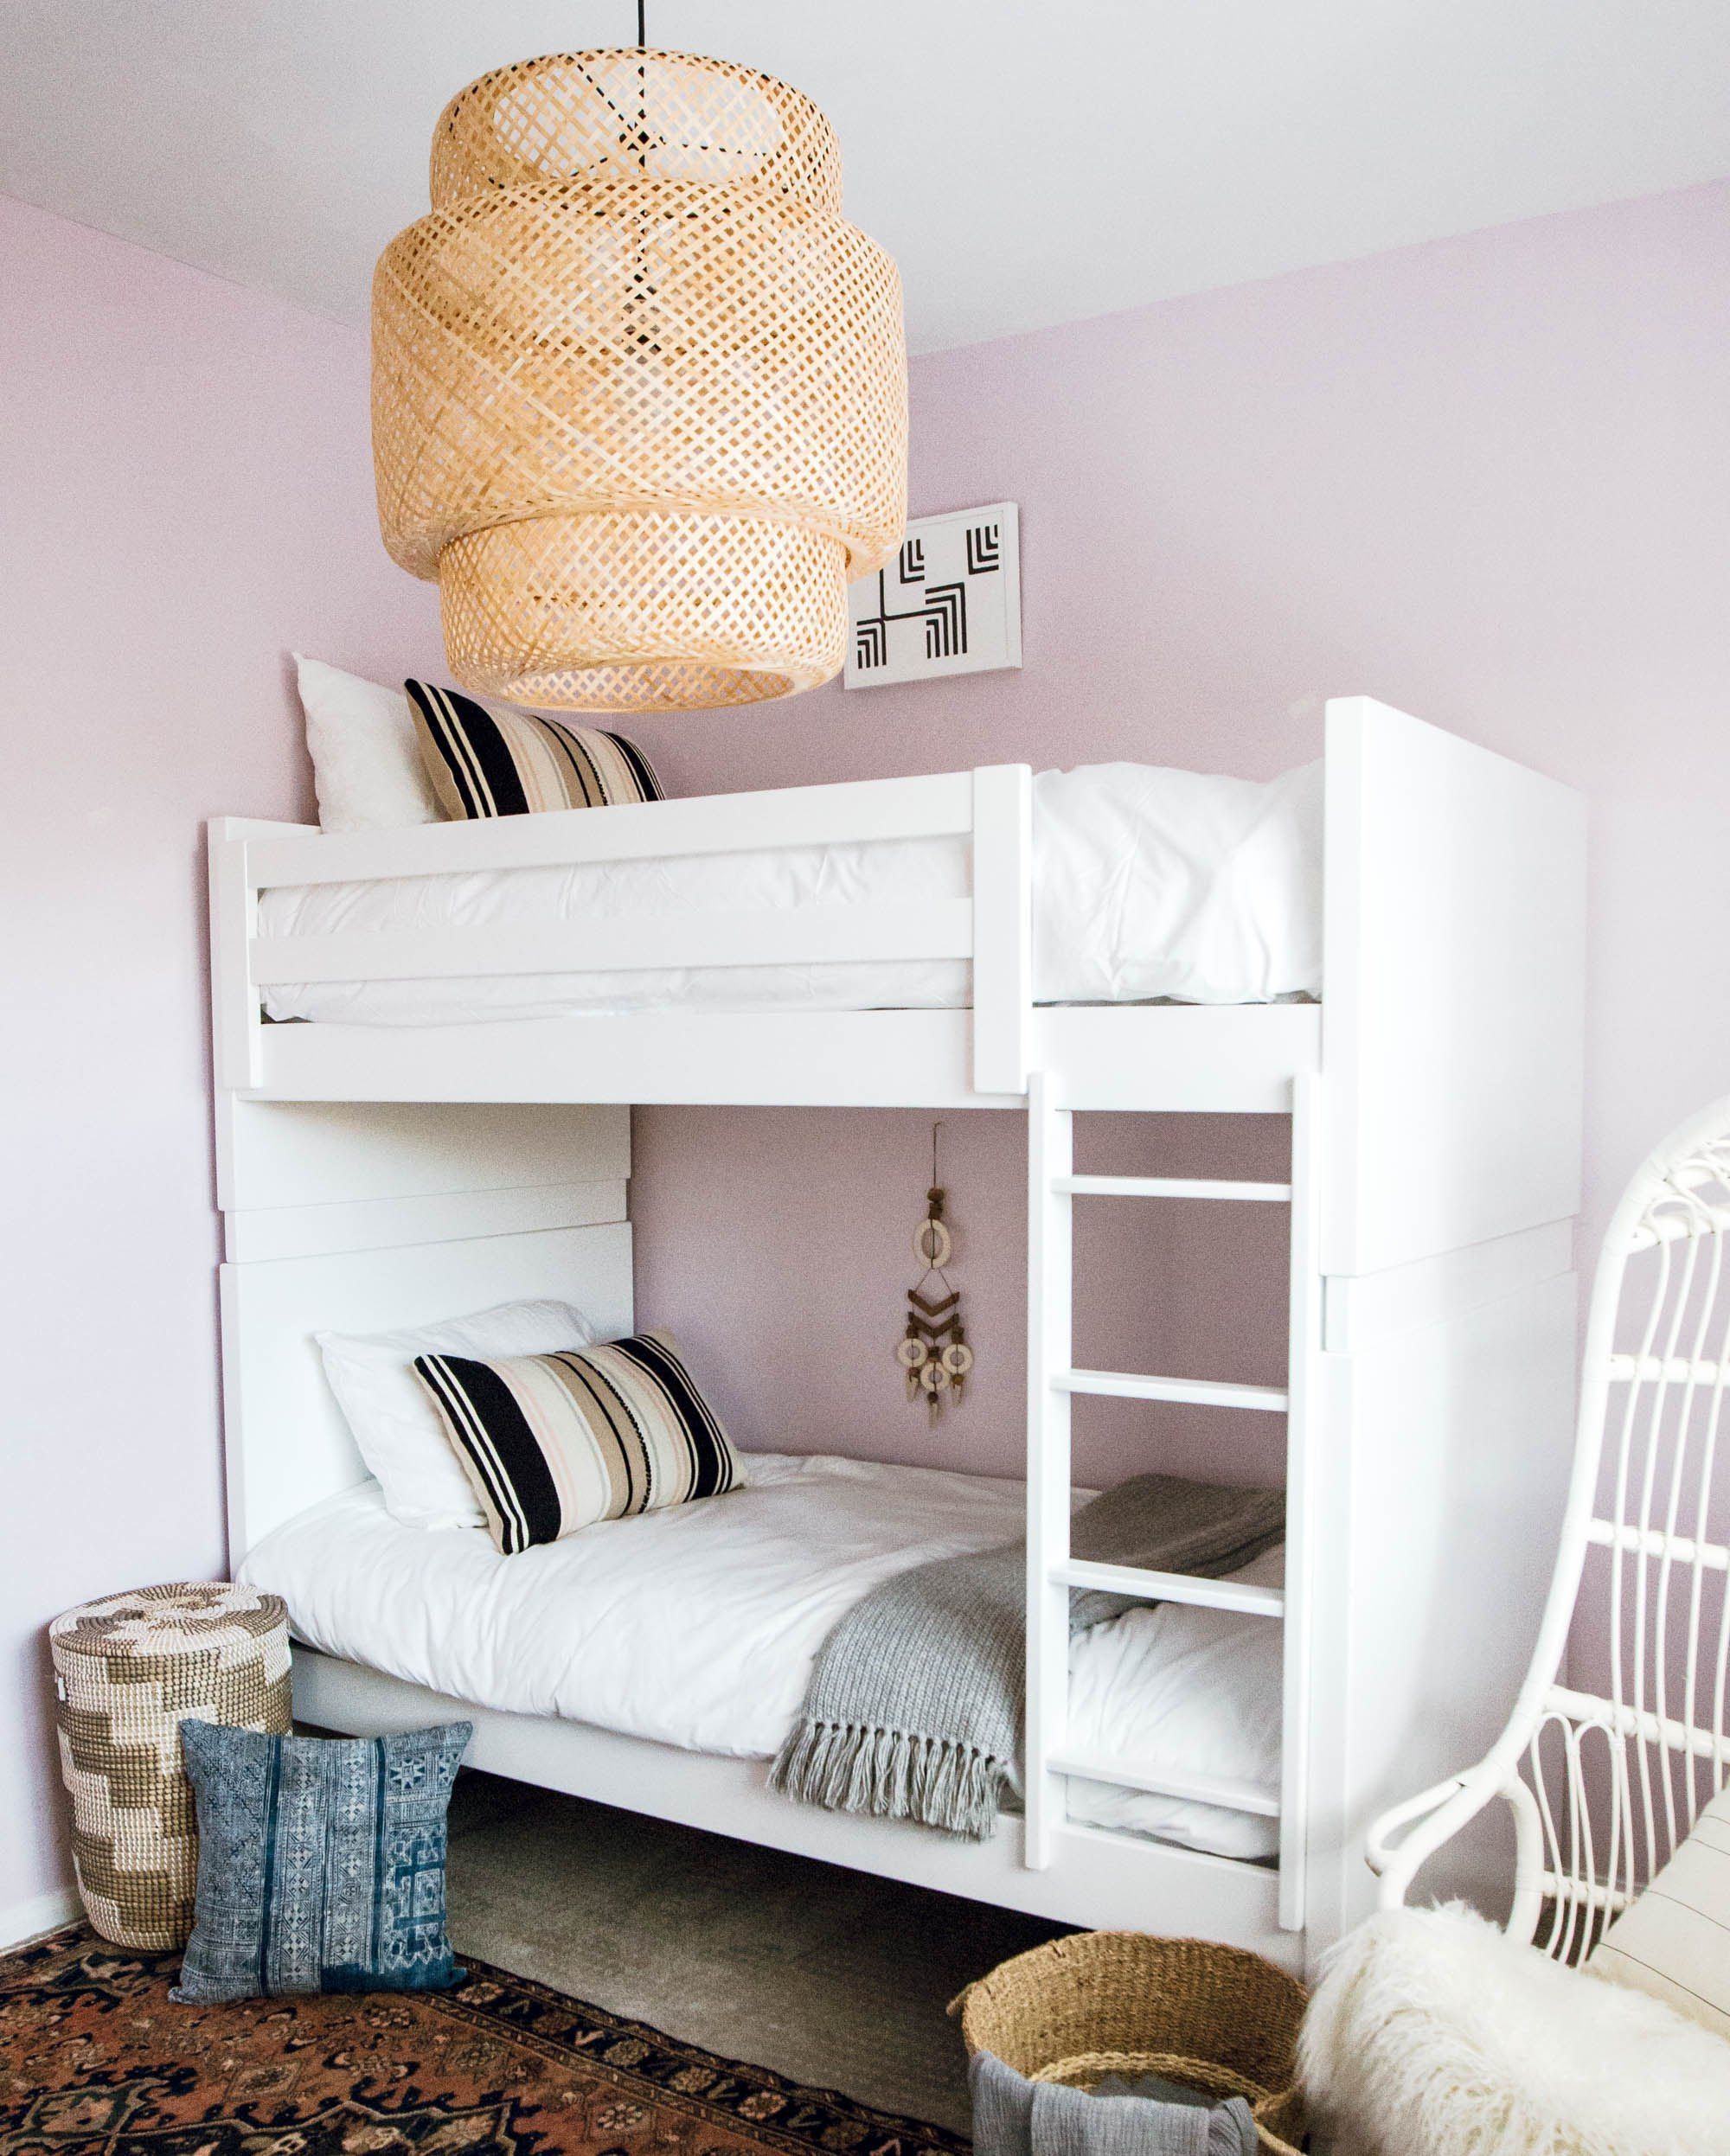 Shared Bedroom Ideas For Adults: Two Magical Ways To Save Space